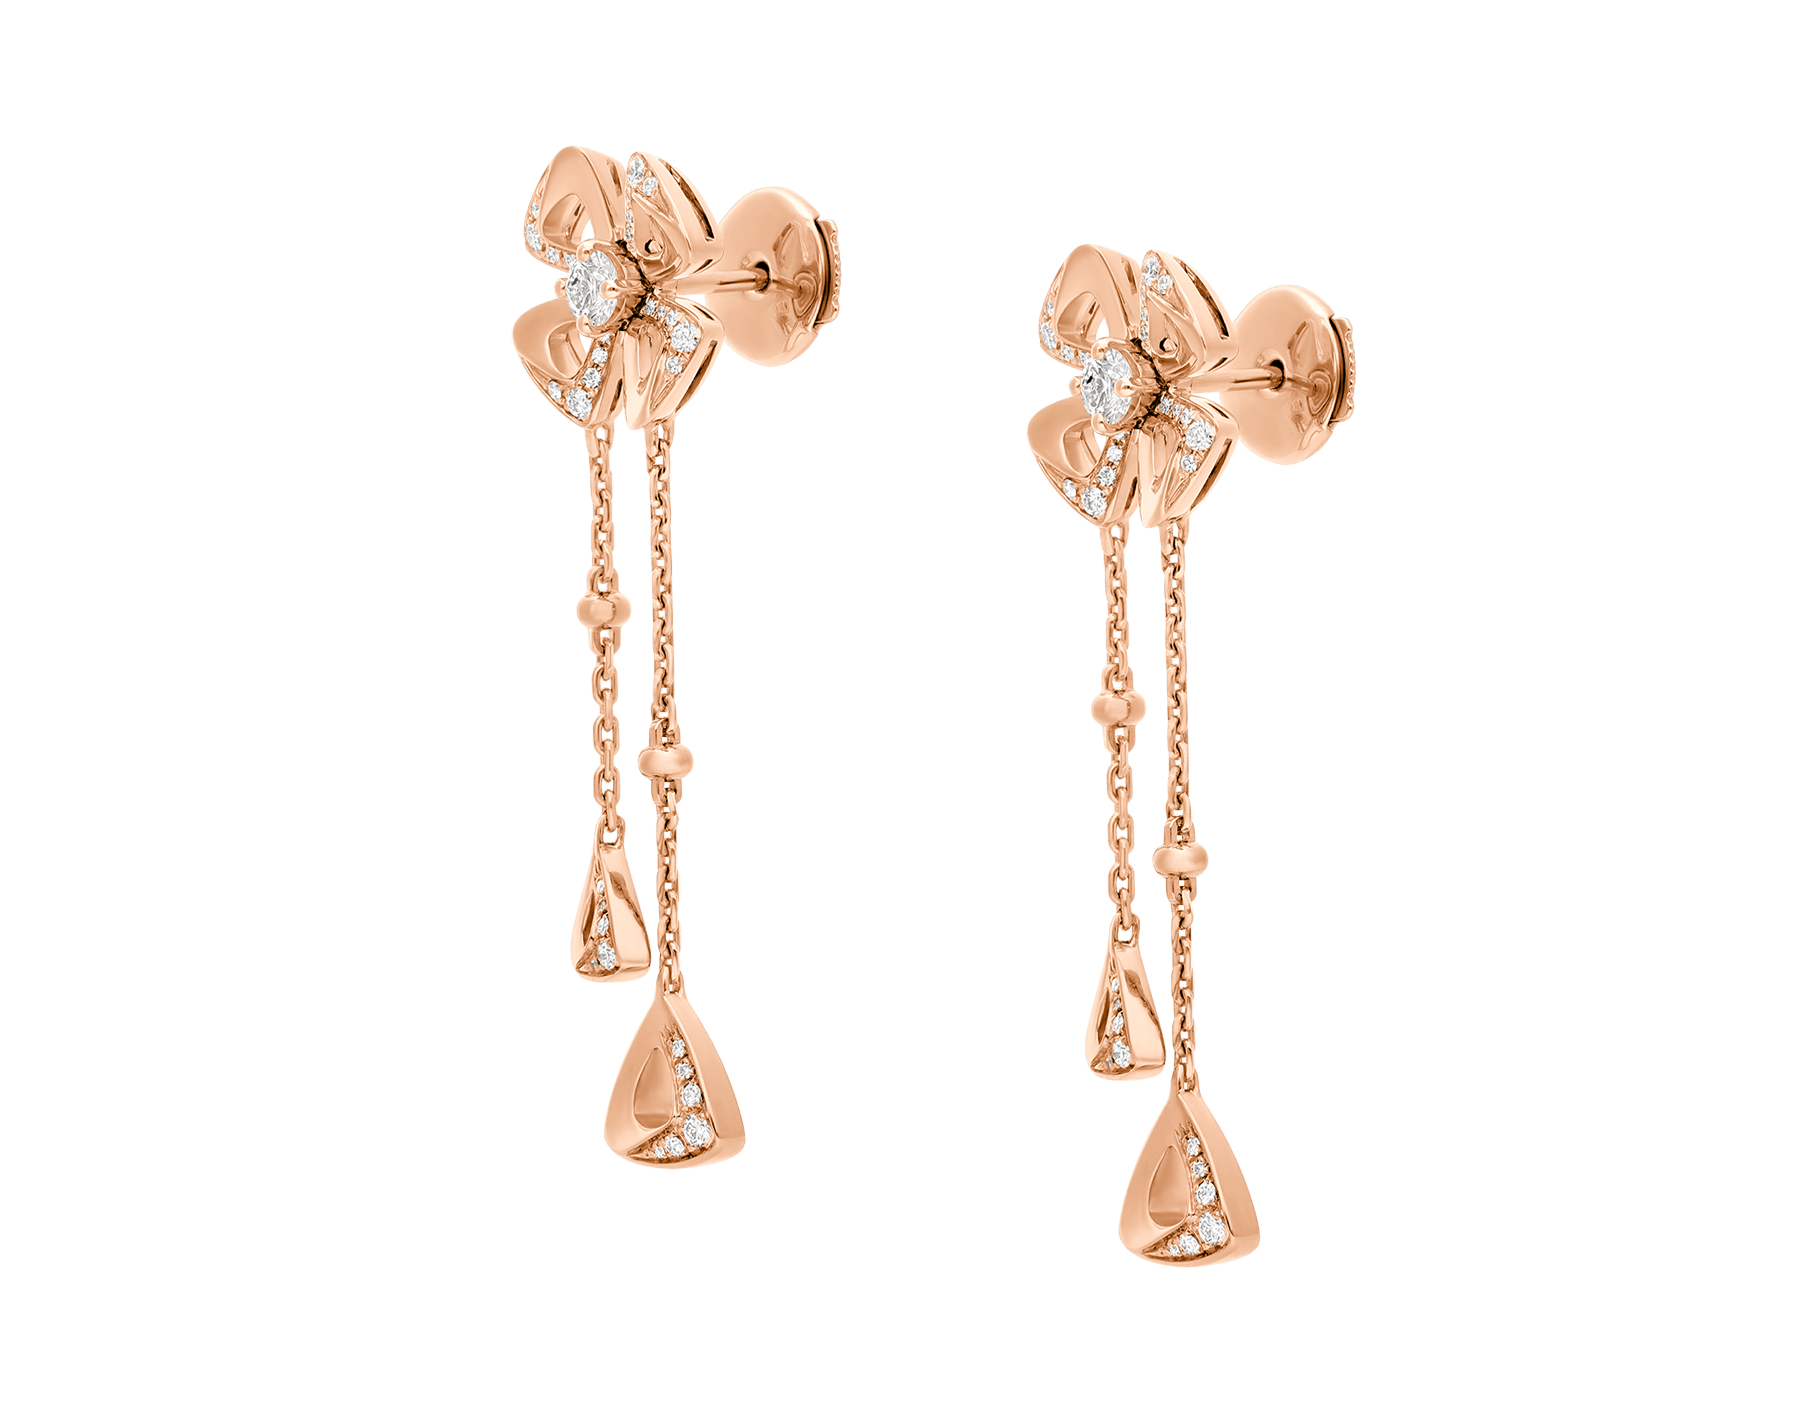 Fiorever 18 kt rose gold pendant Earring set with two round brilliant-cut diamonds (0.21 ct) and pavé diamonds (0.17 ct) 357143 image 2